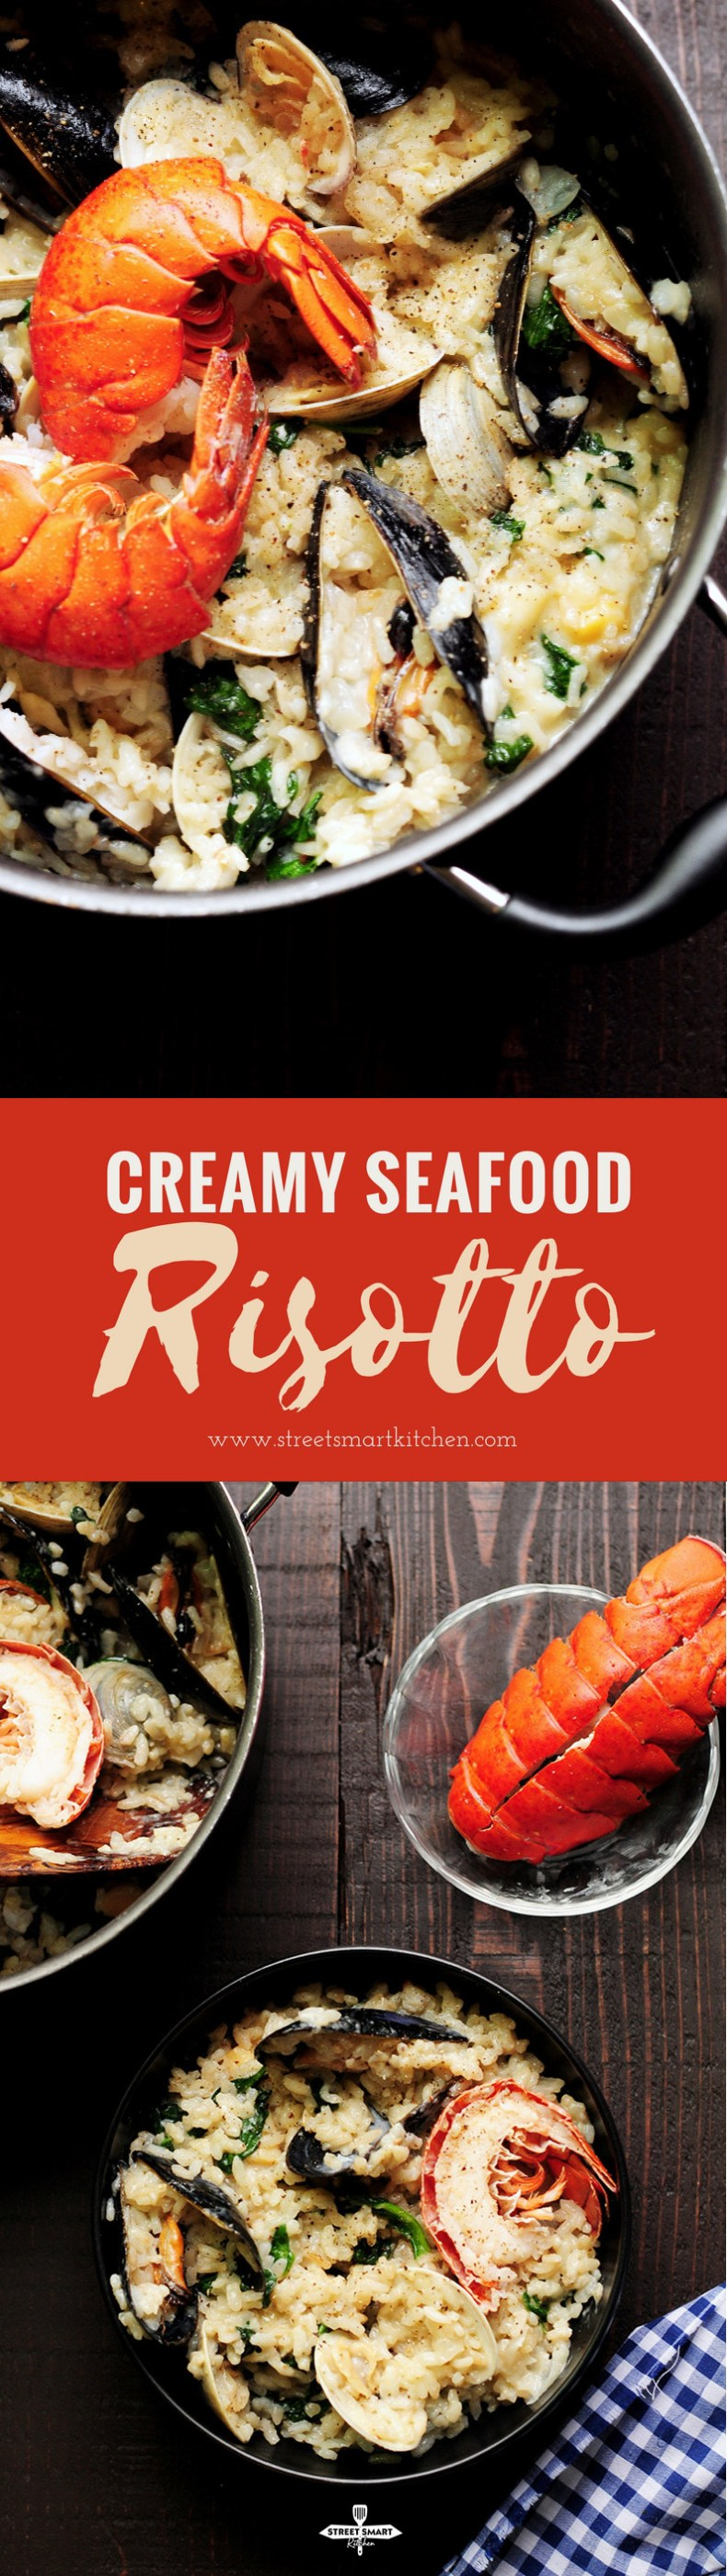 Creamy seafood risotto recipe dedicatedly simmered in lobster stock and heavy cream with clams, mussels, bay scallops, lobster tails, and spinach. It's a perfect date-night-in dinner or for any special occasions.